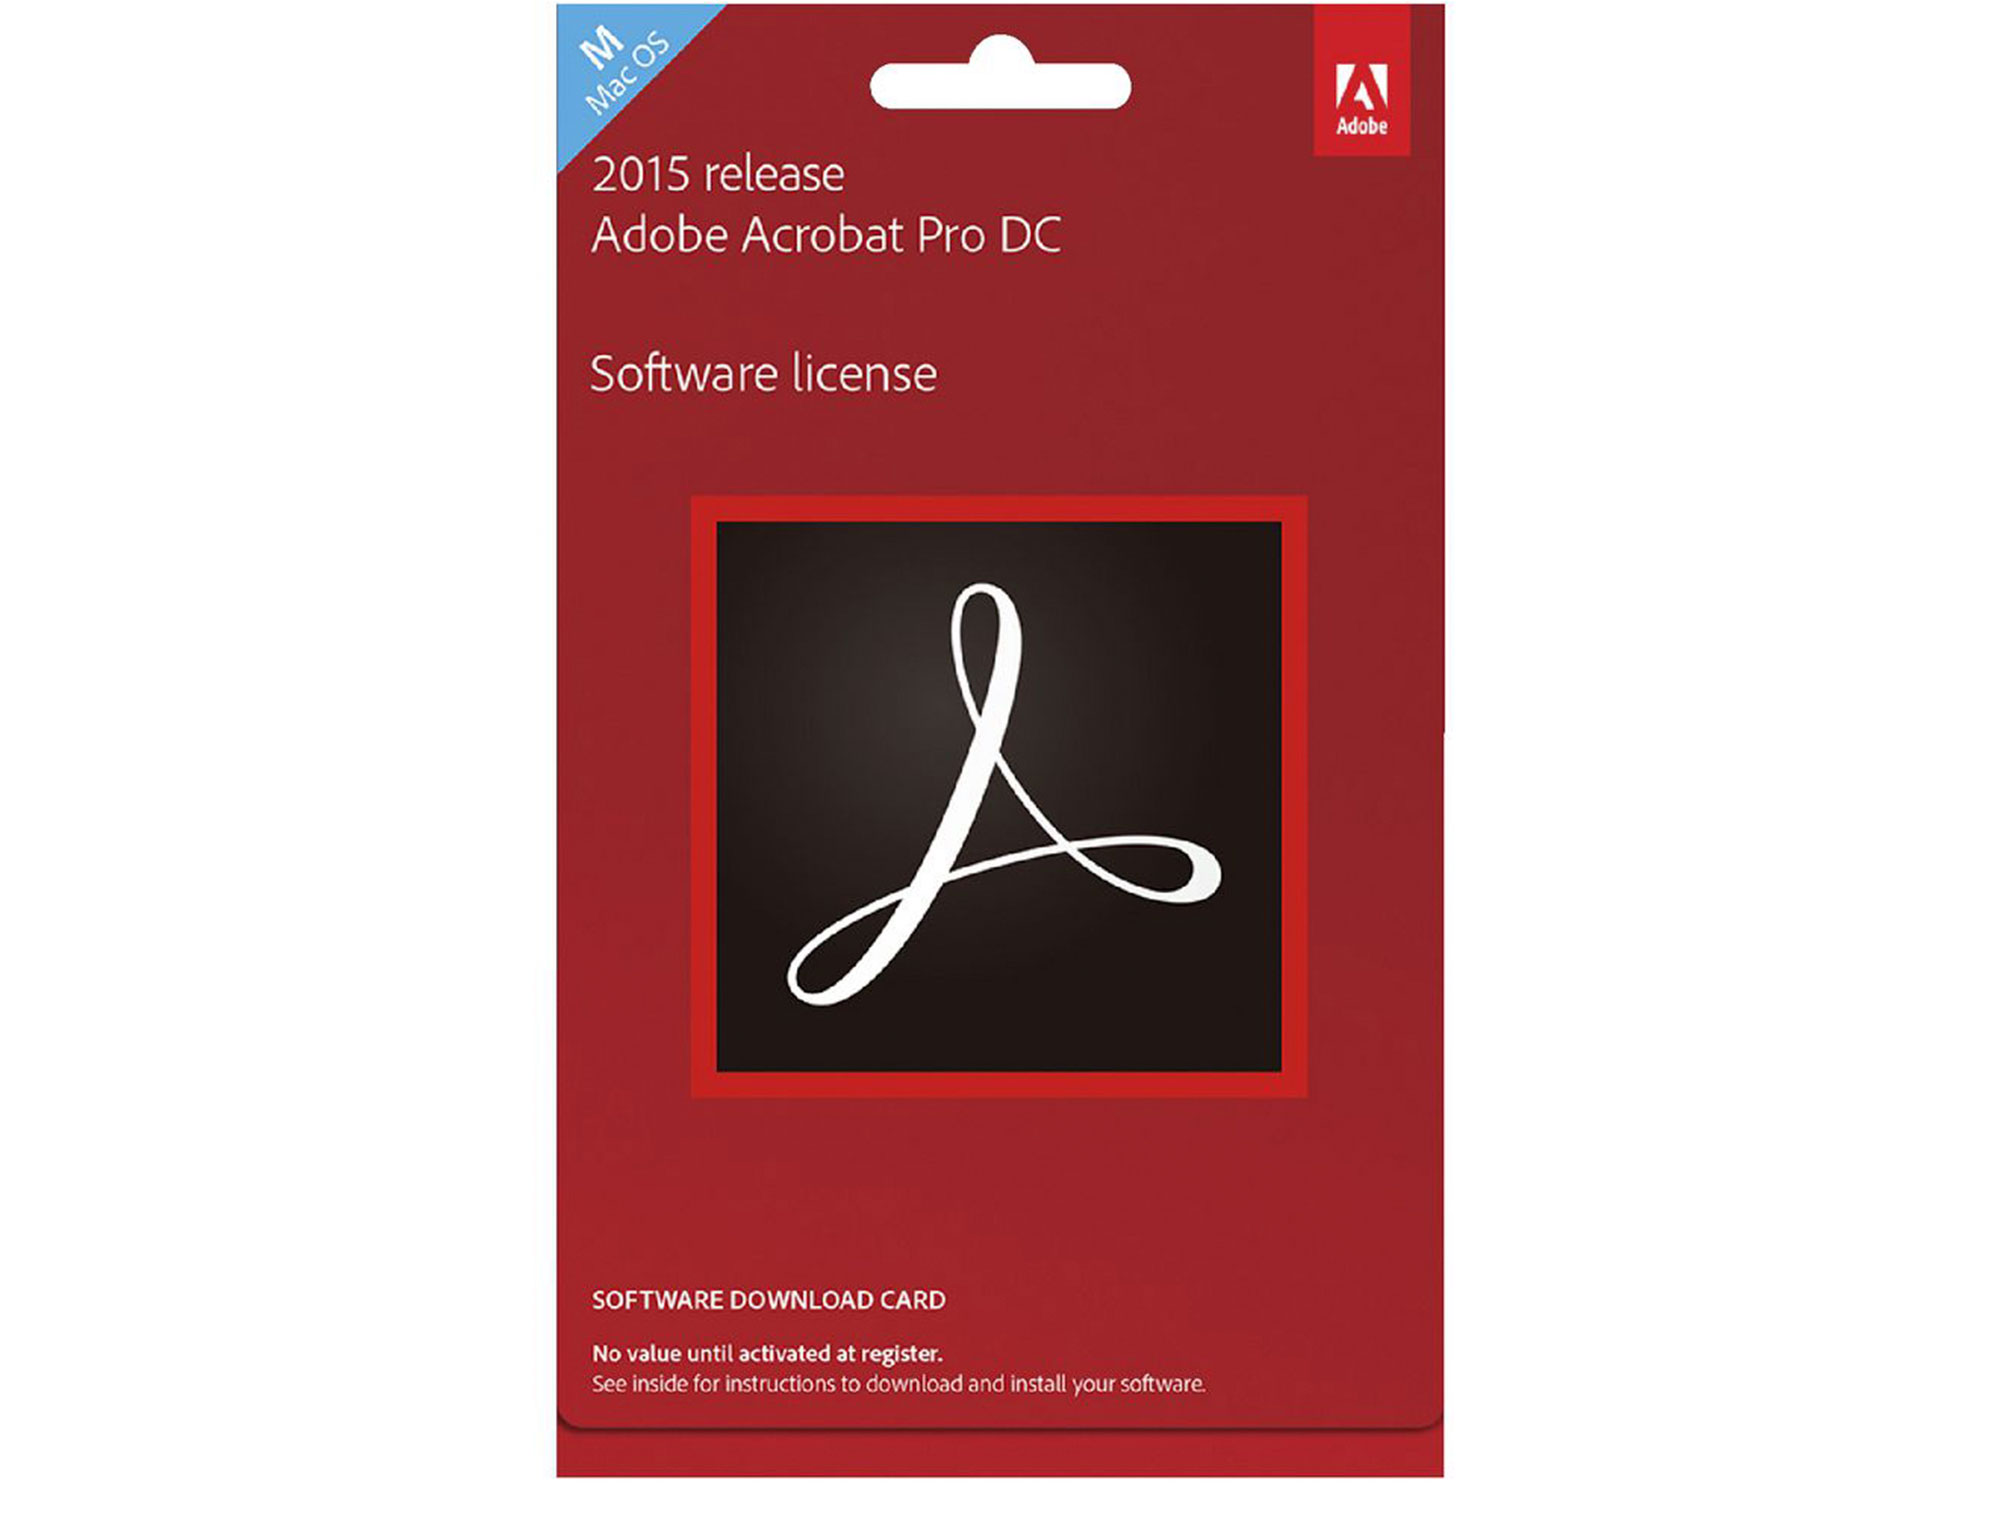 how to change image in adobe acrobat pro